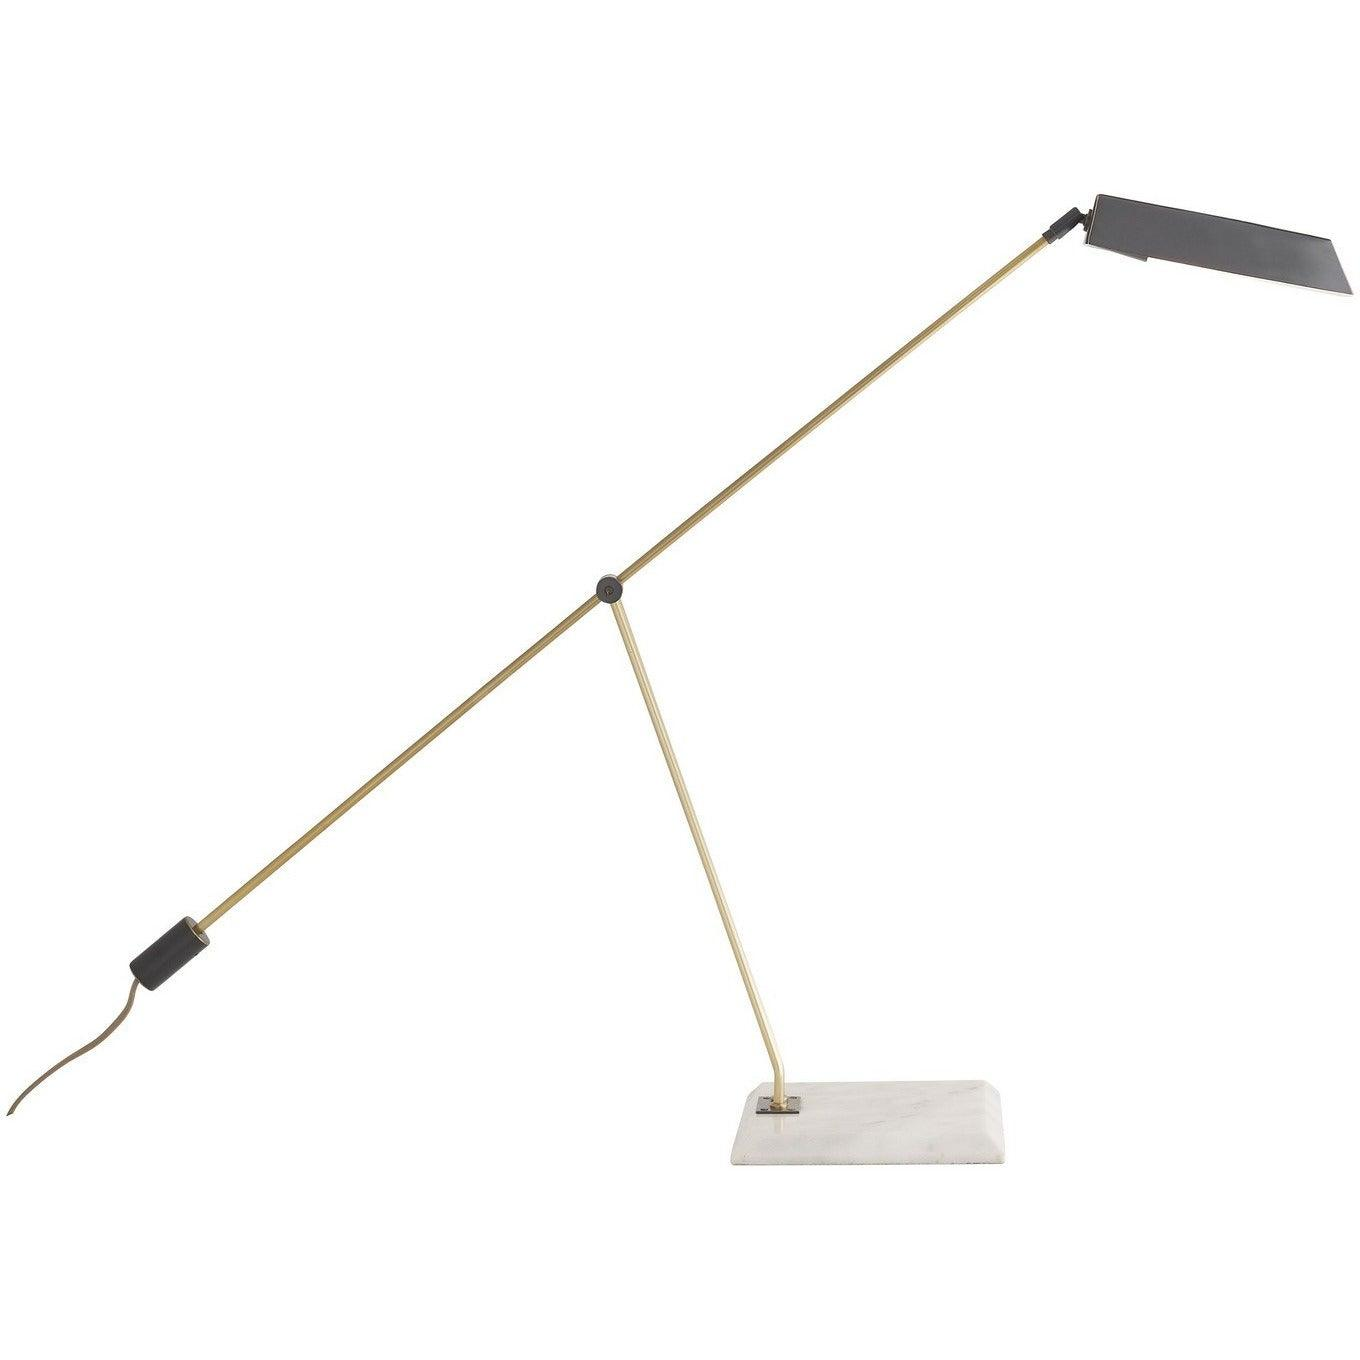 Arteriors - 49679 - LED Desk Lamp - Devin - White